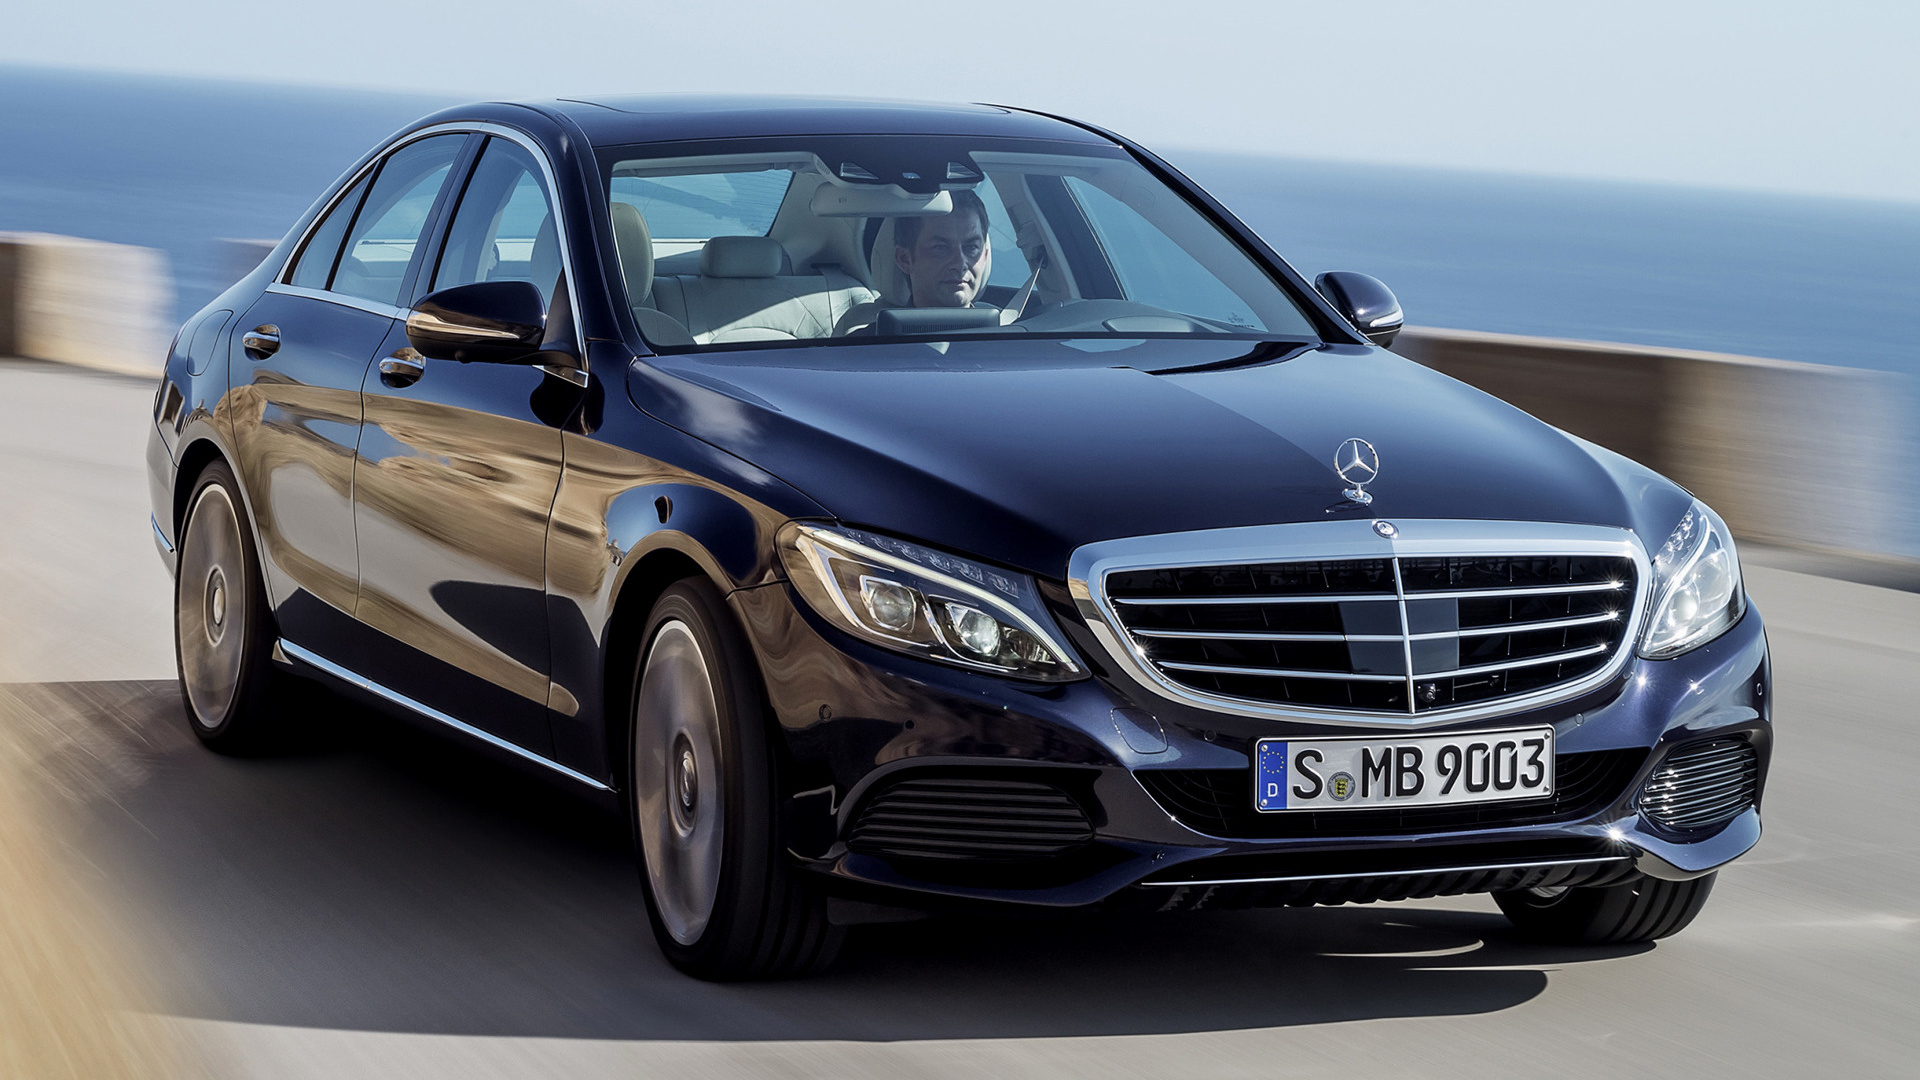 2014 mercedes benz c class hybrid with classic grille. Black Bedroom Furniture Sets. Home Design Ideas